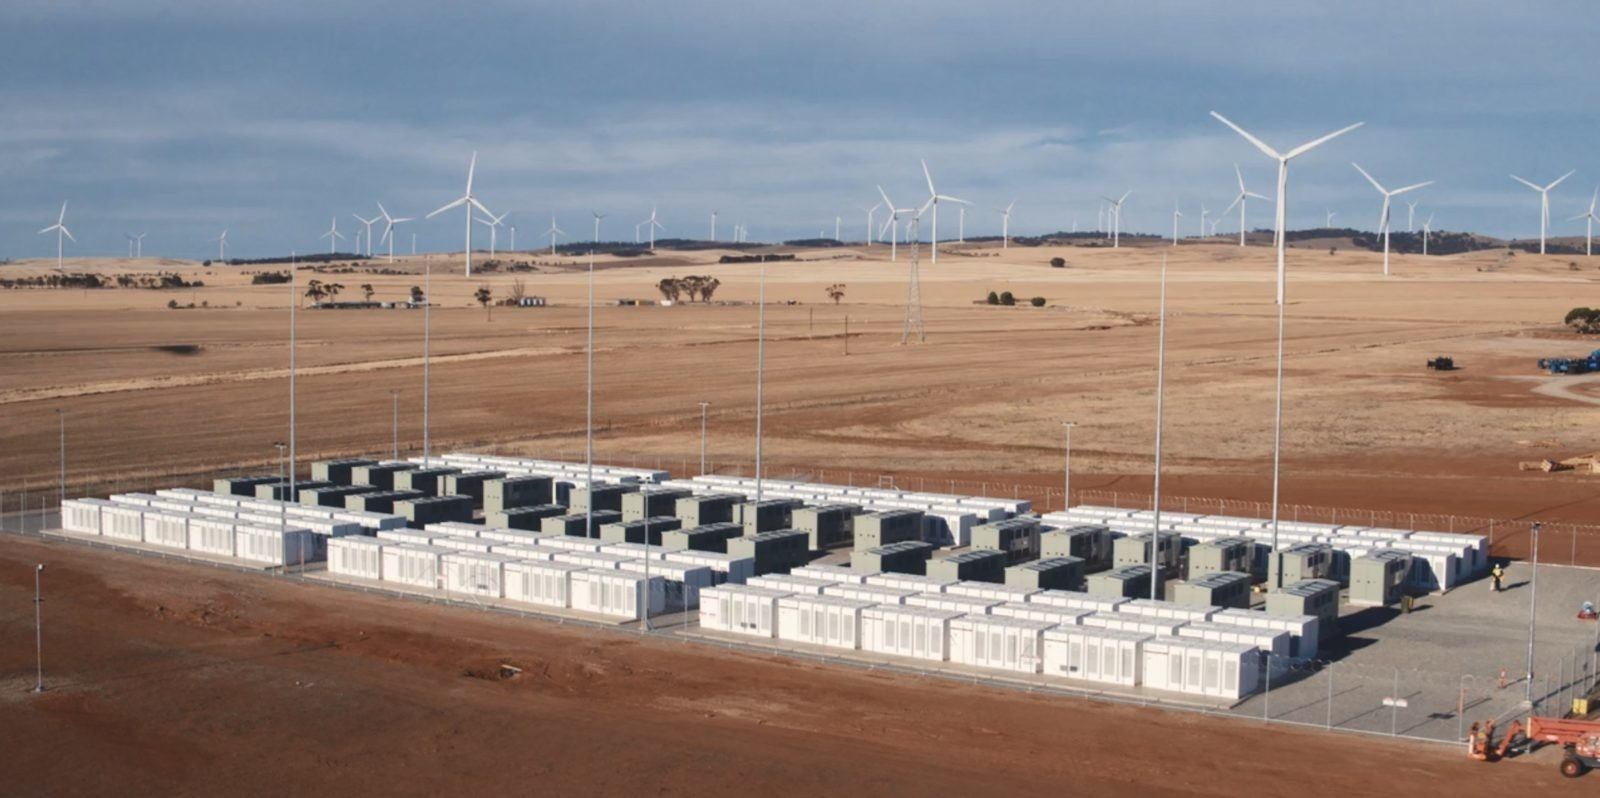 Tesla bids for a new world's largest Powerpack battery system in Colorado